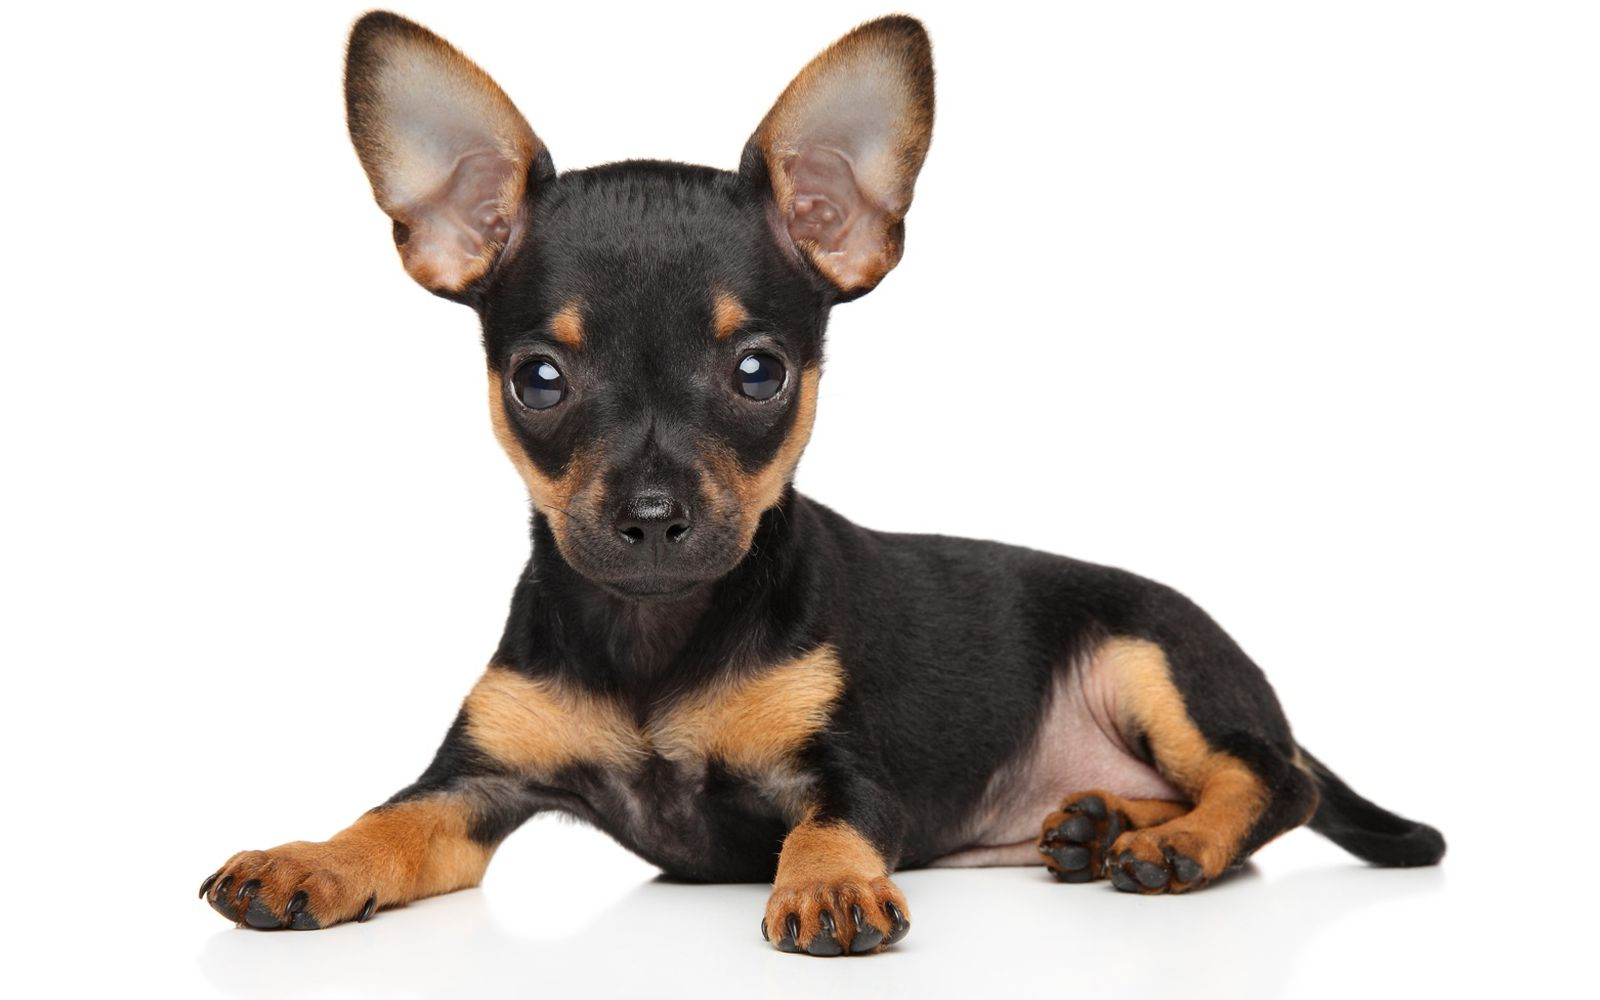 English Toy Terrier (Black and Tan) - Puppy